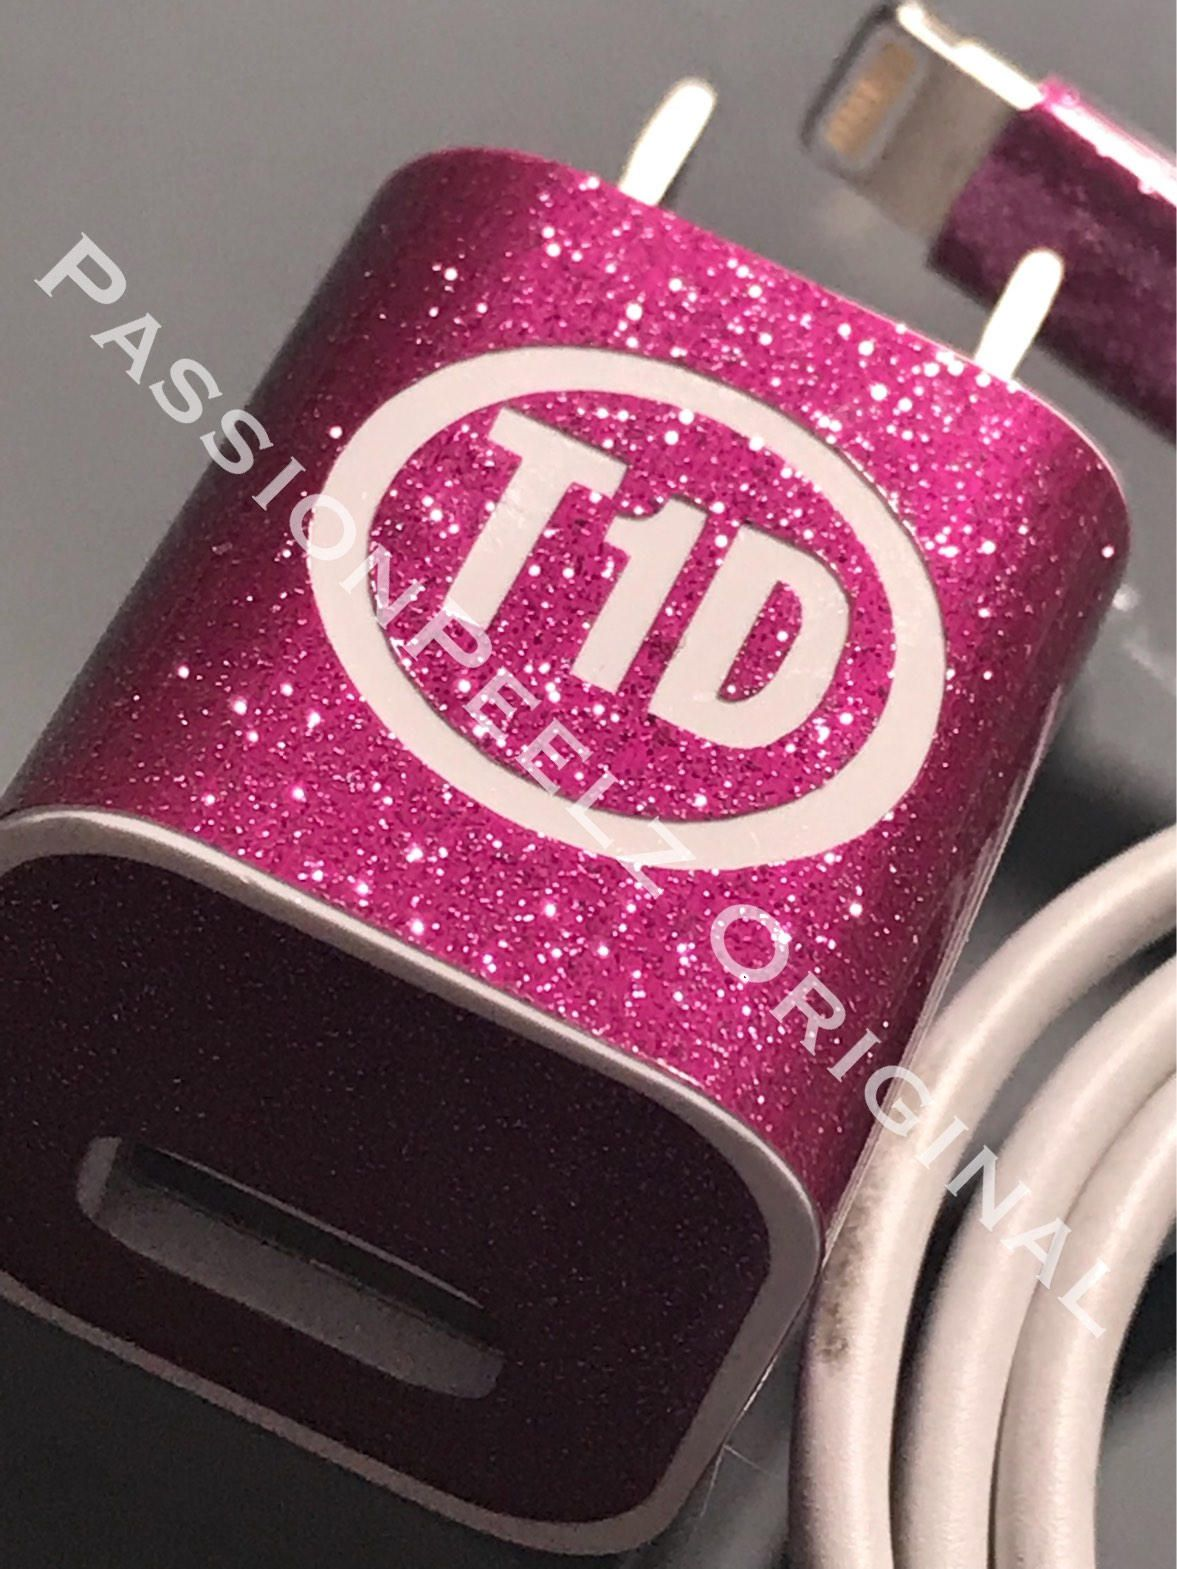 Charger diabetes skins t1d type 1 awareness by passionpeelz on etsy